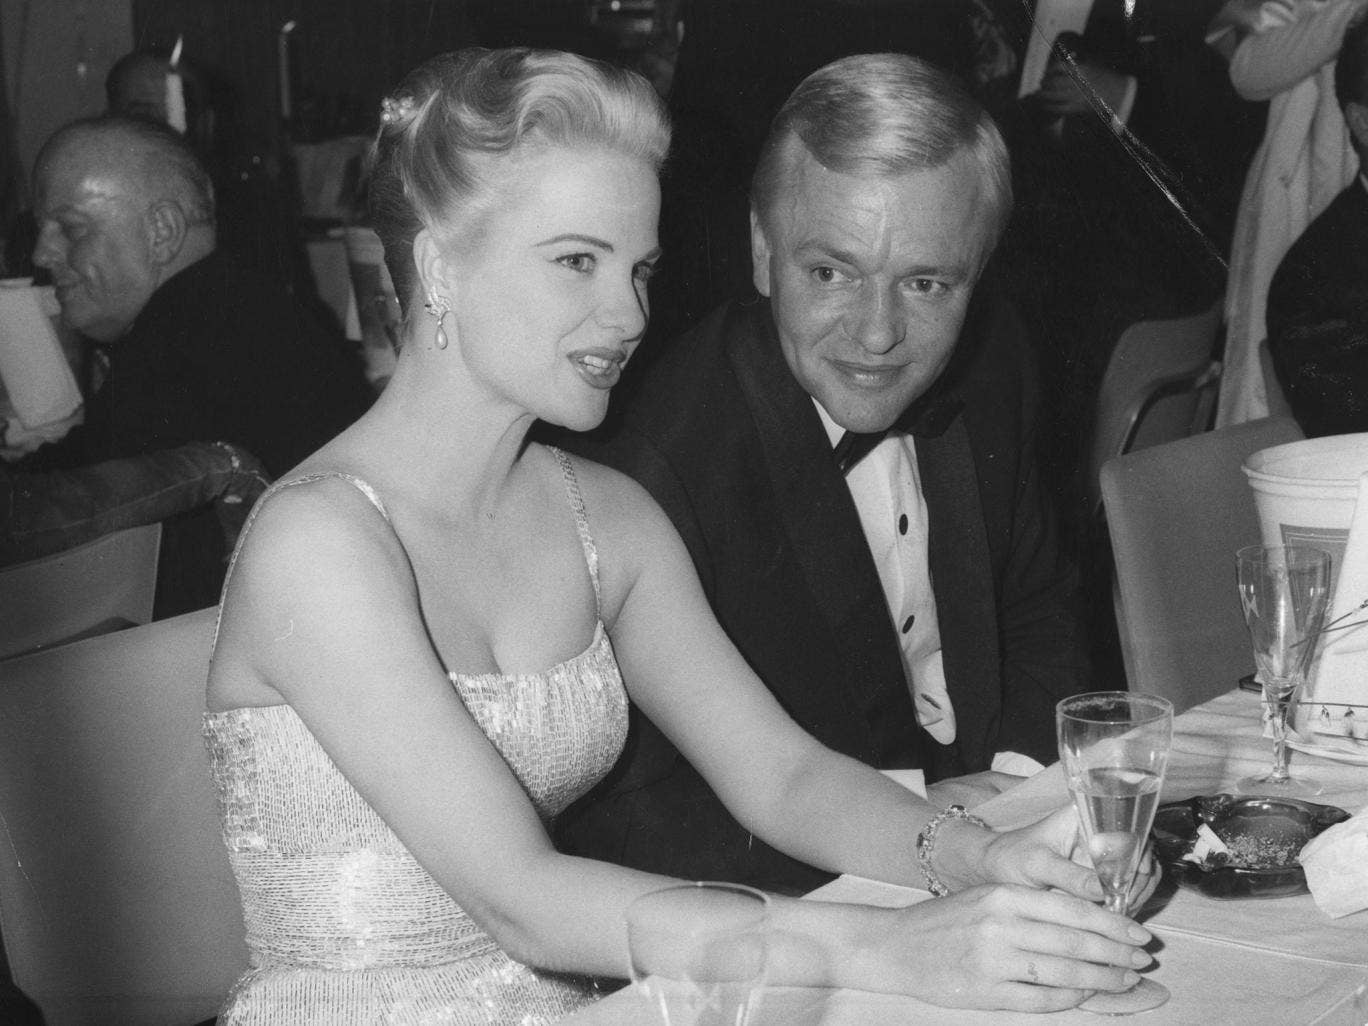 21st February 1960: American actress Martha Hyer and Peter van Eyck at the 1960 Film Ball at the Hilton Hotel in Berlin.